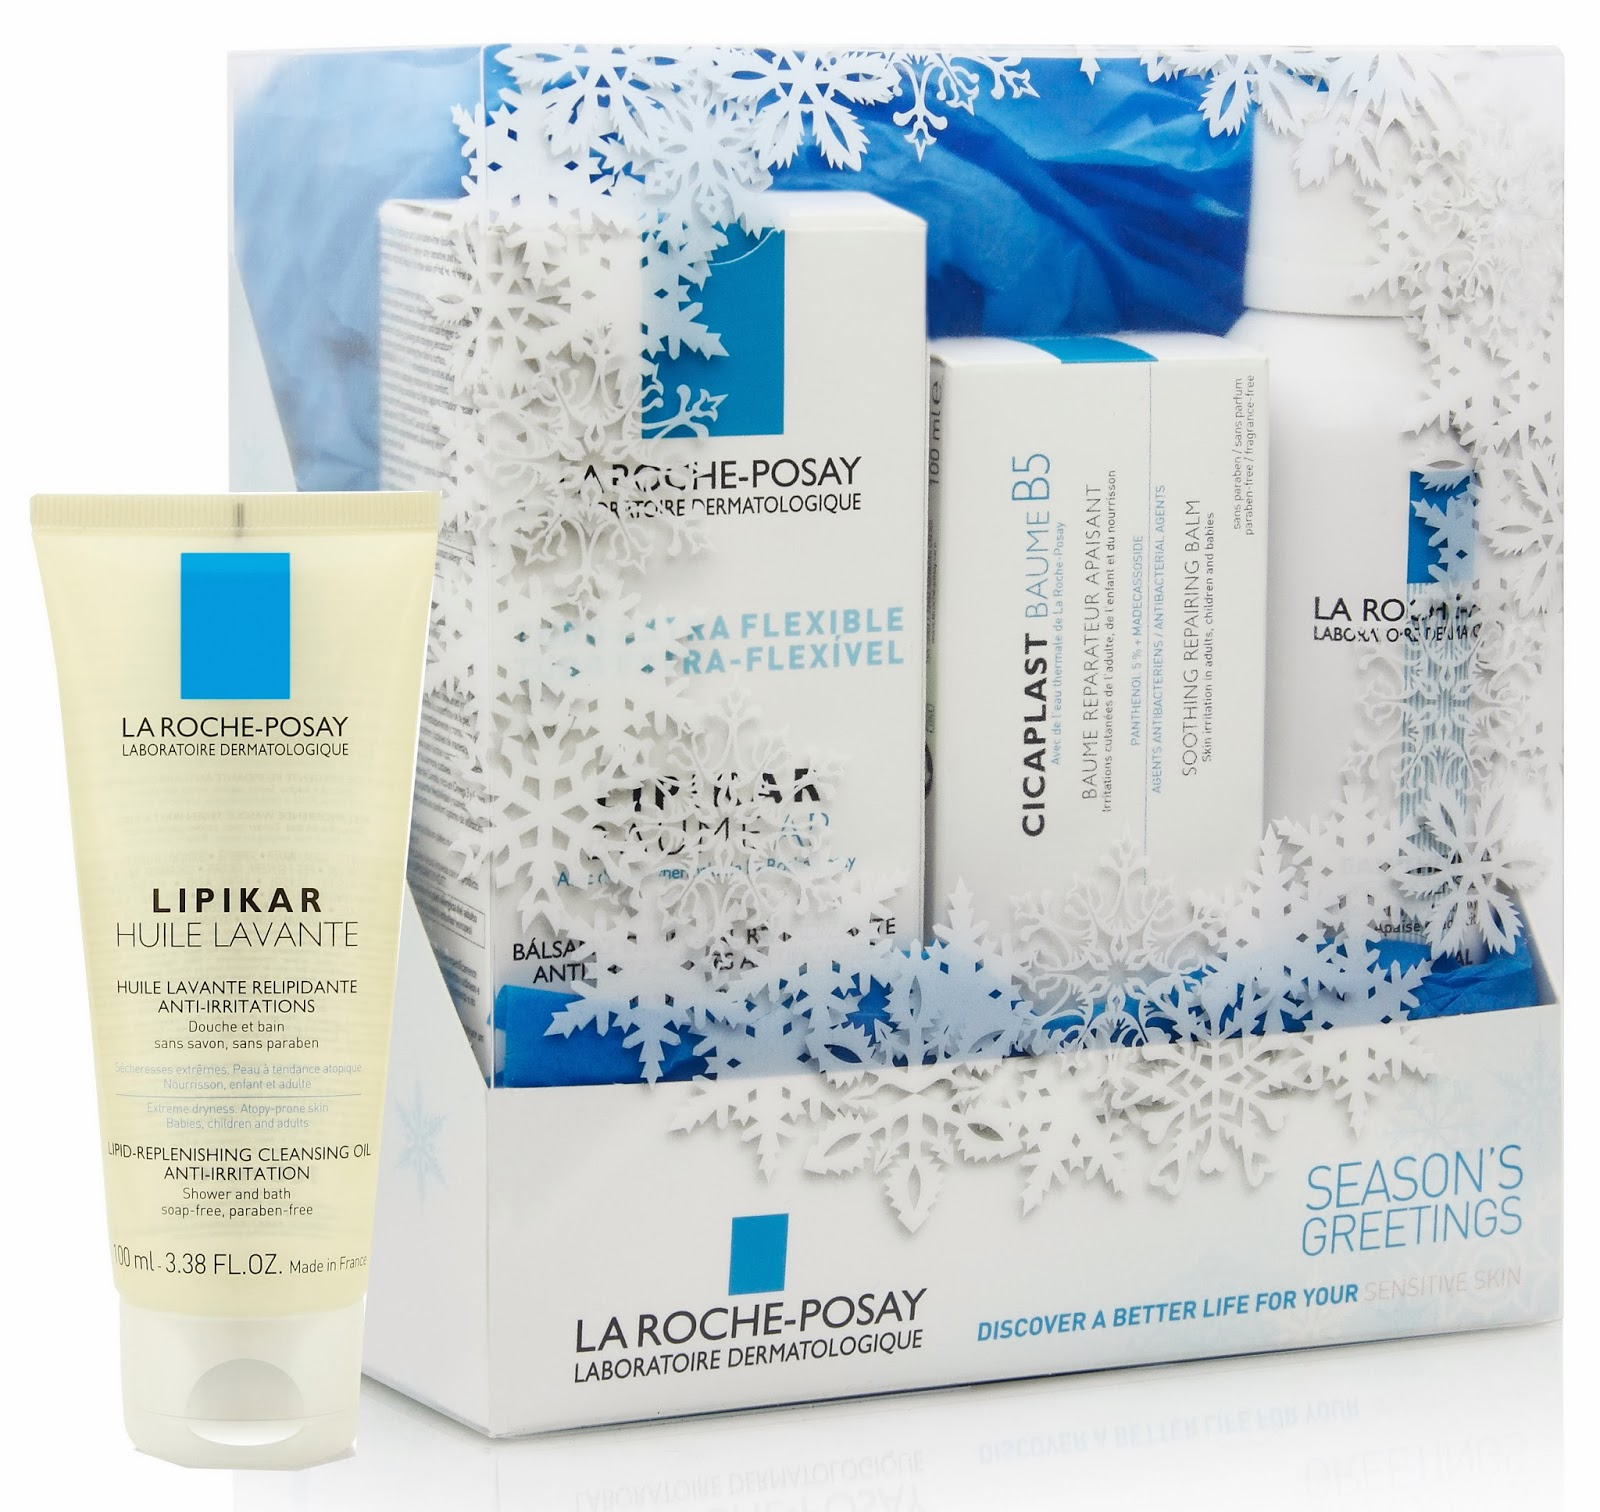 Make Up For Dolls: Christmas 2013 Gifts from La Roche-Posay